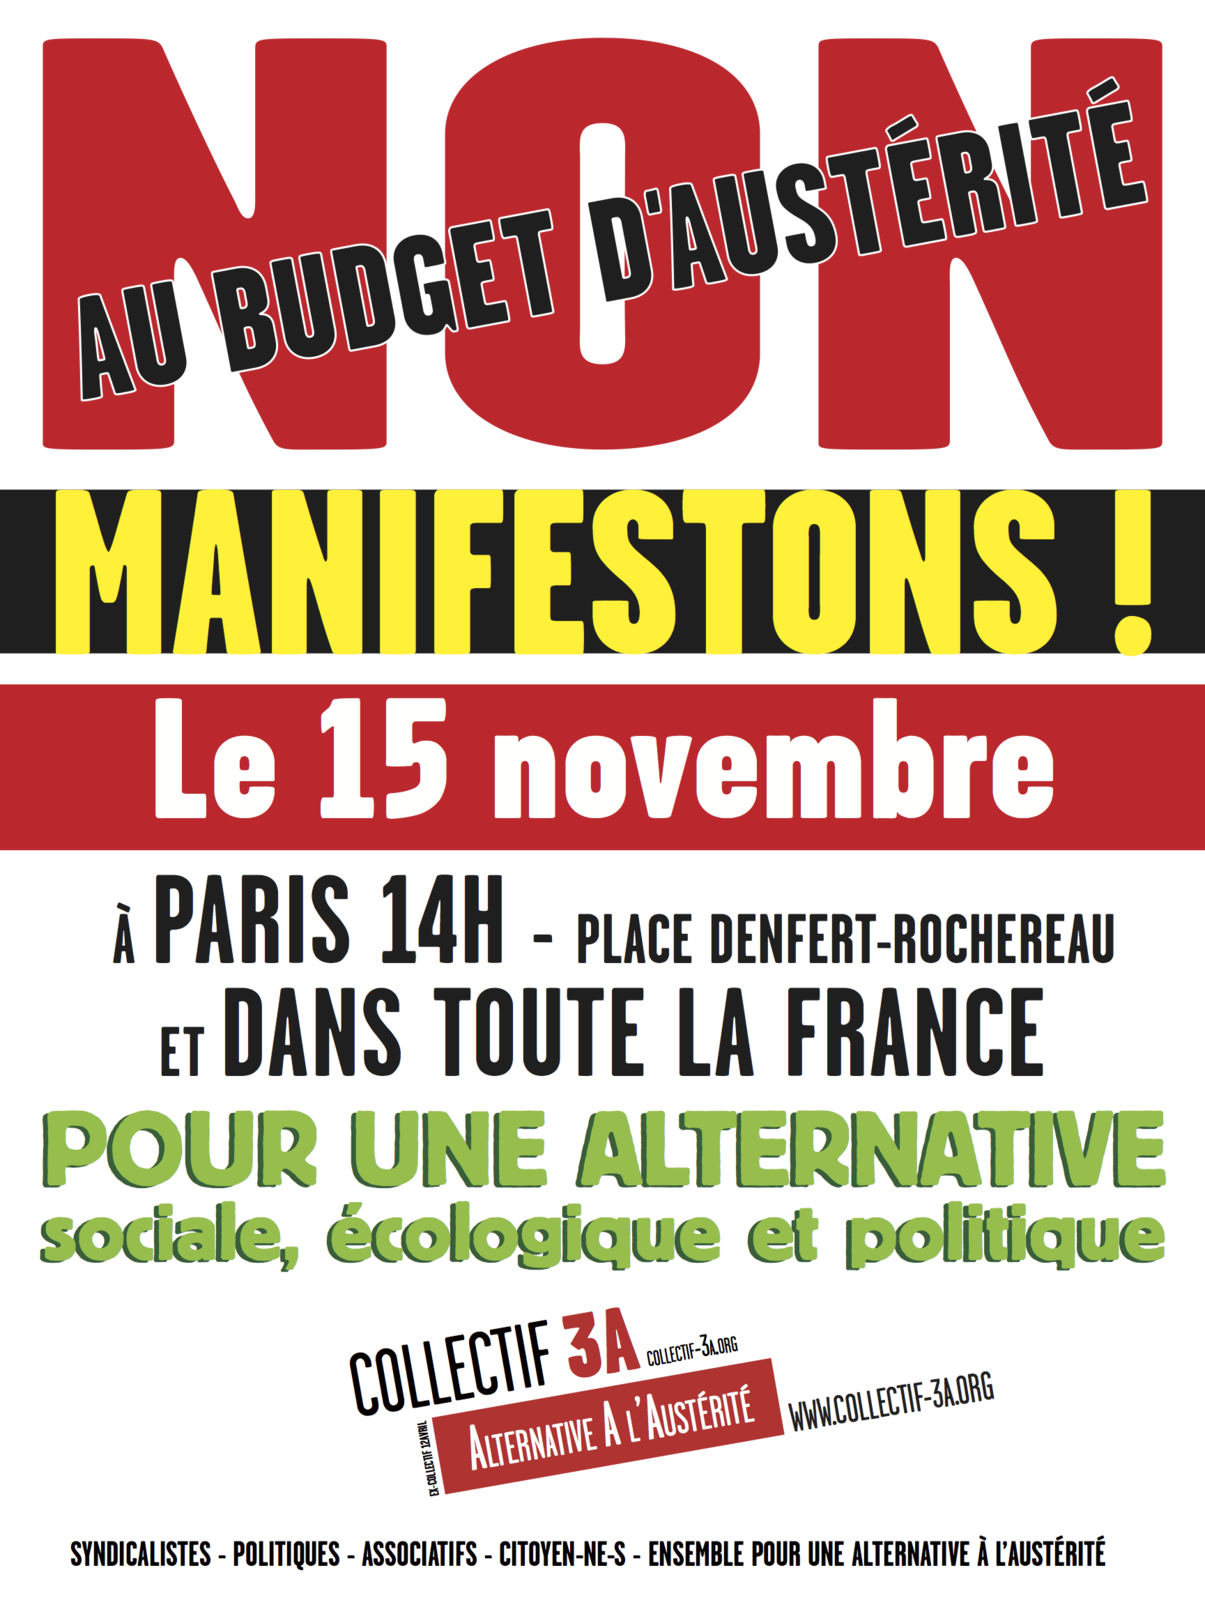 http://www.collectif3a.org/